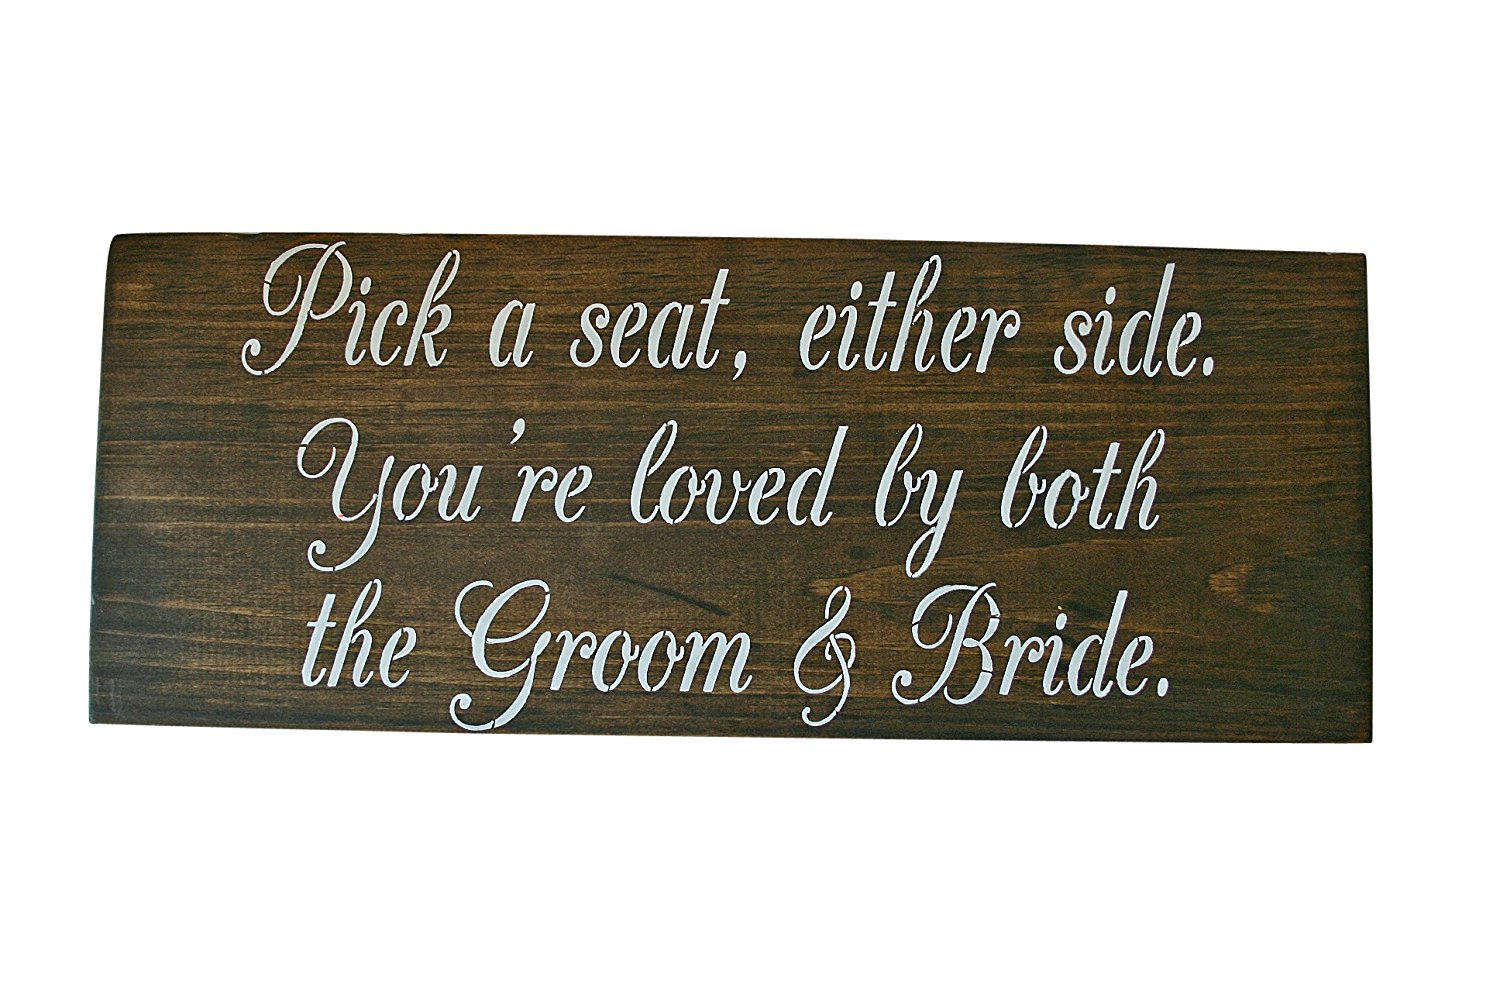 Pick a Seat Either Side You're Loved by the Groom & Bride, No Seating Plan, Wedding Ceremony Signs, Rustic Wedding Wood Signs, Custom Signs (Dark Walnut)